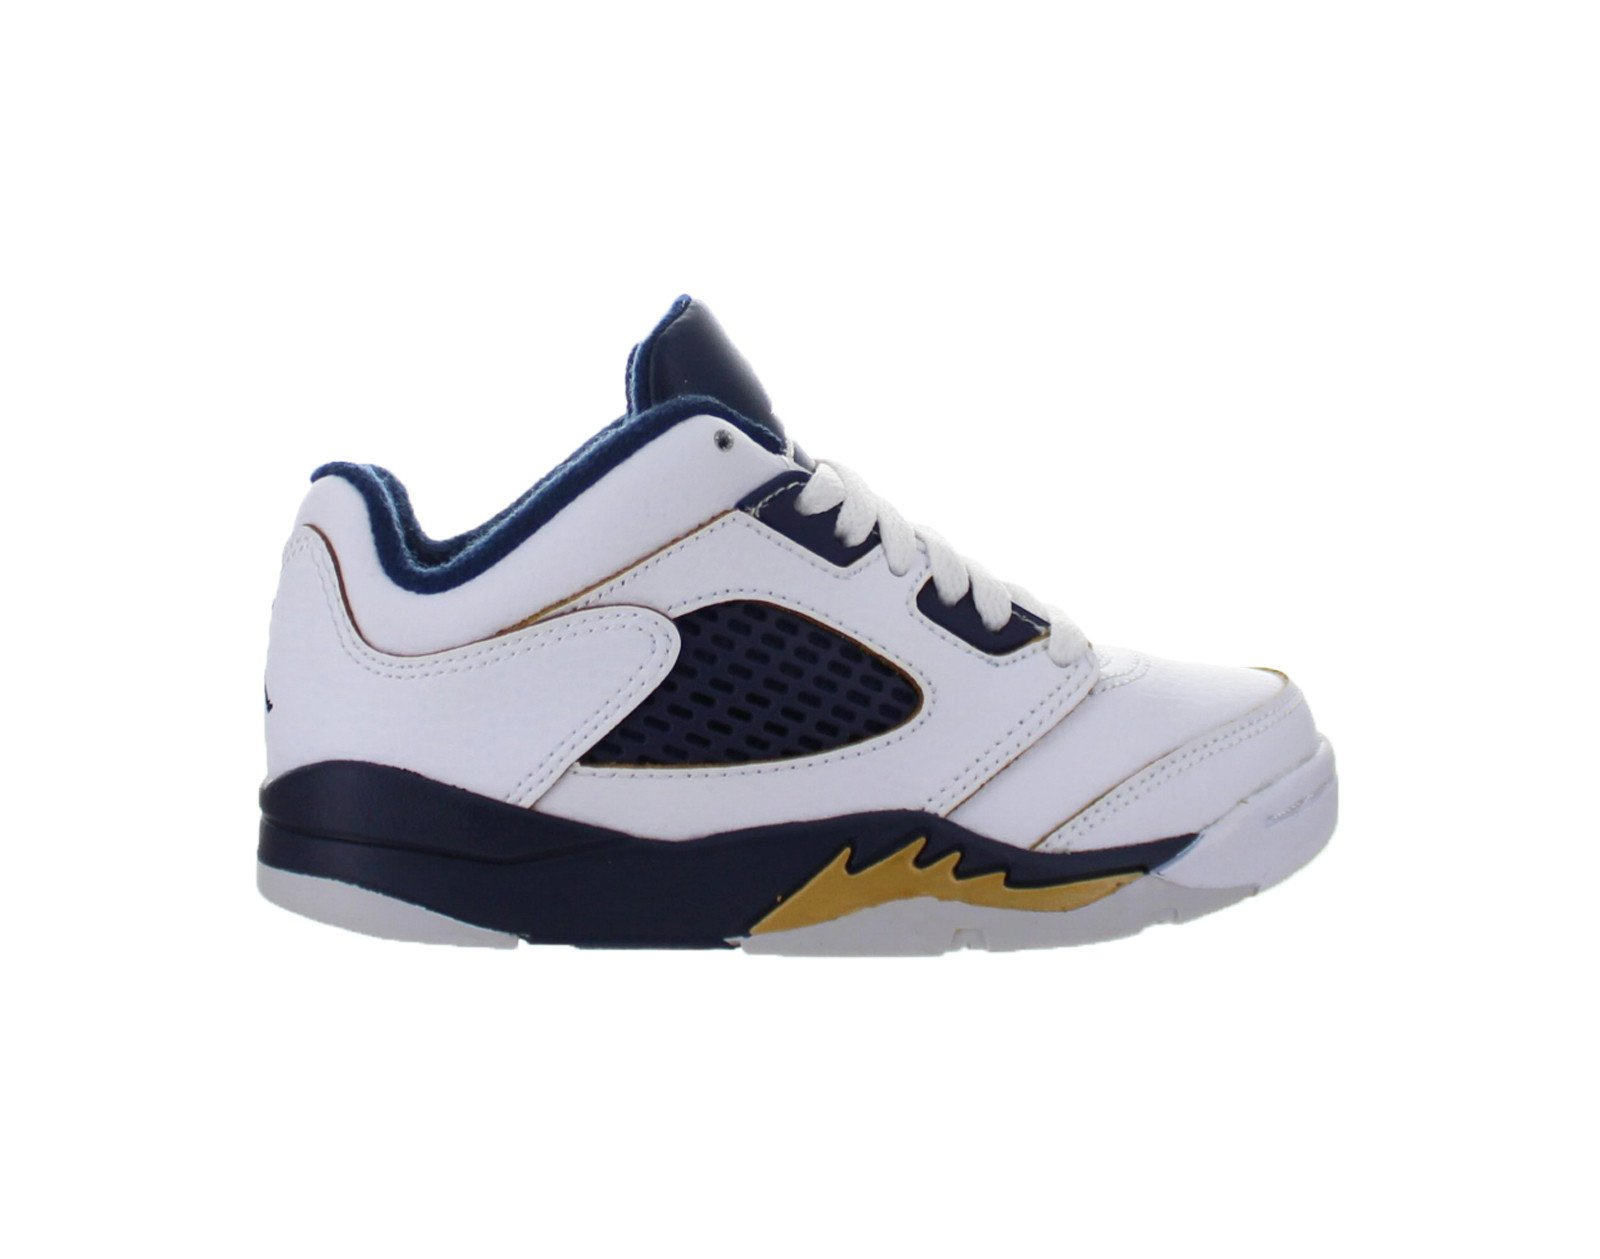 official photos fb5c8 f8cd5 ... usa air jordan 5 v retro low ps dunk from above white midnight navy  walmart 6fd5f